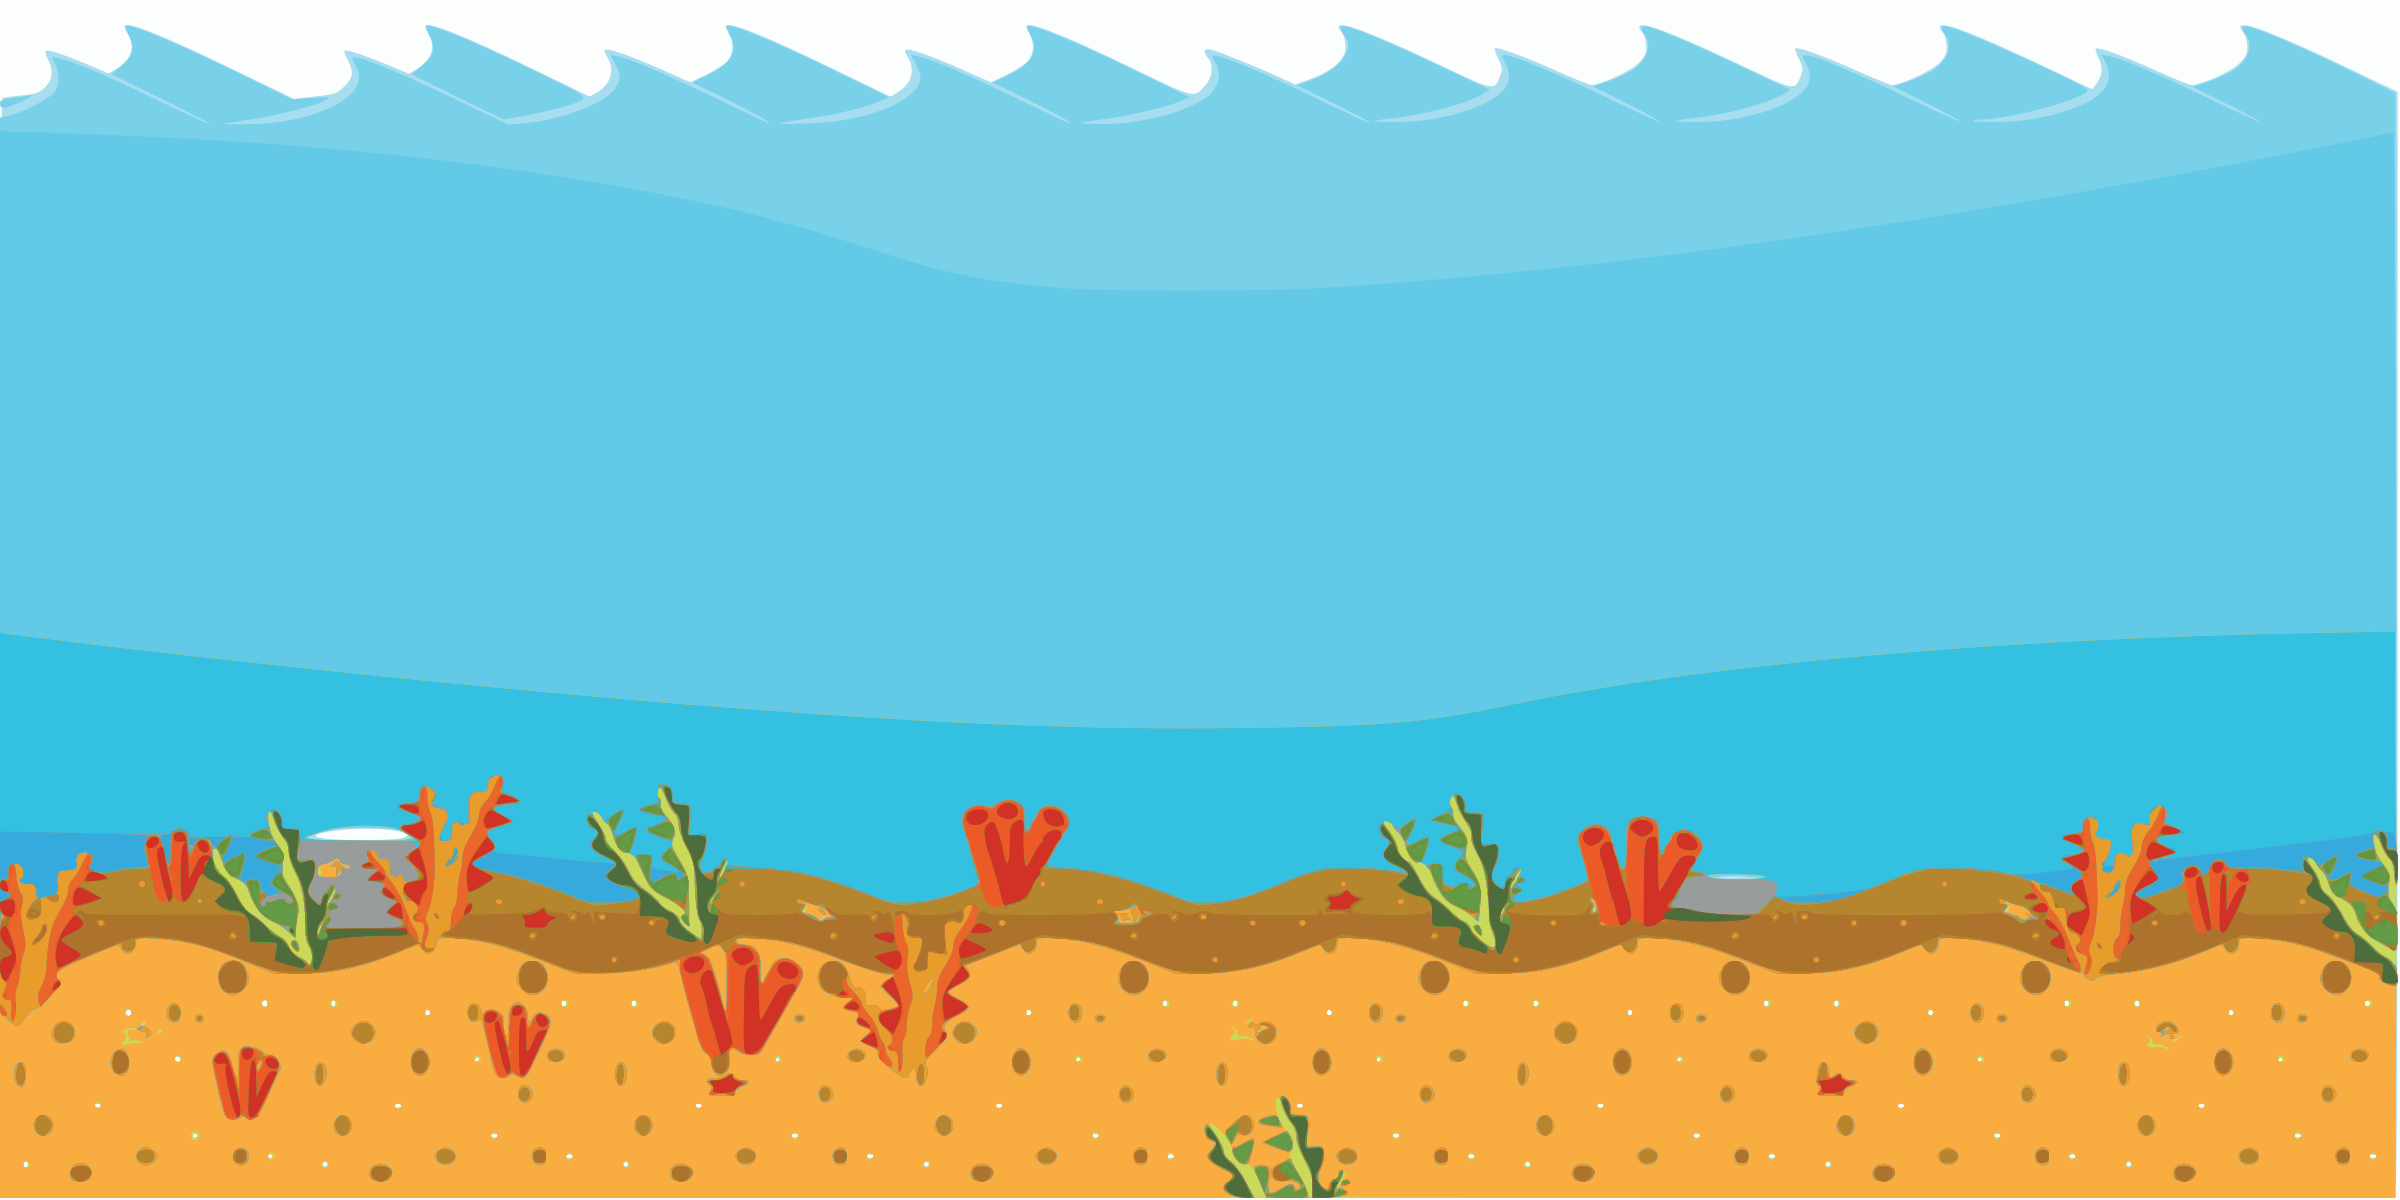 Free sea background cliparts. Clipart ocean ground